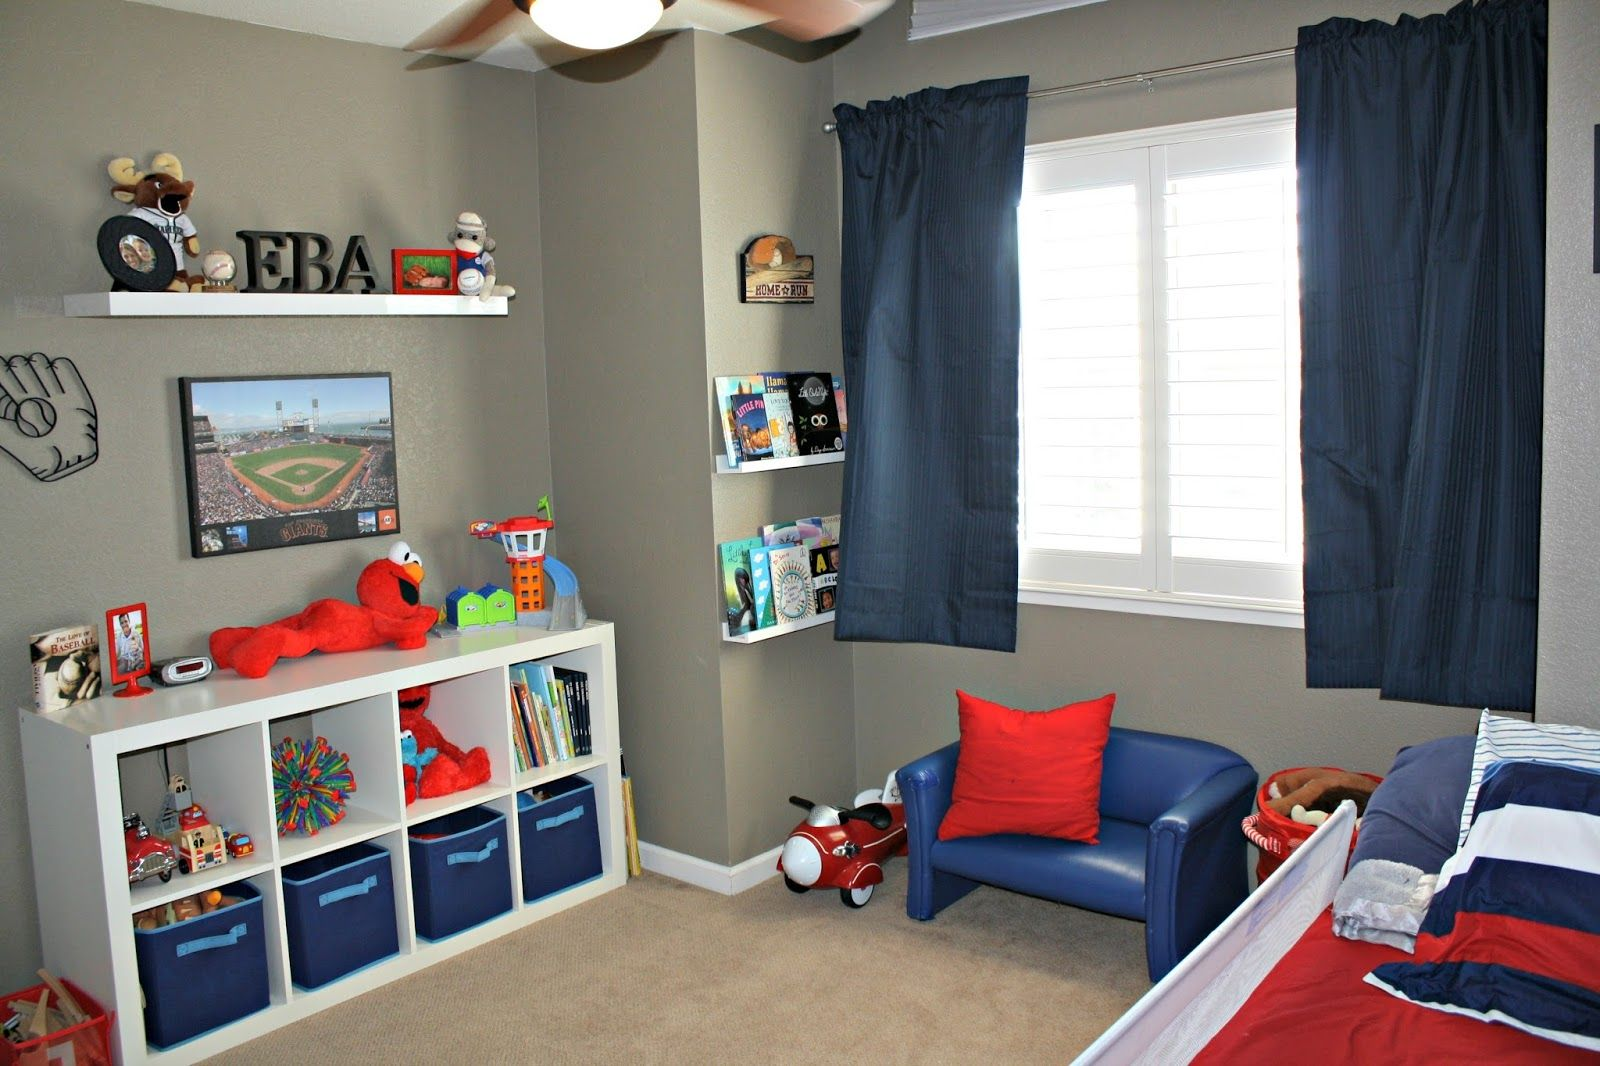 kids bedroom bedroom ideas toddler bedroom boys toddler boys toddler